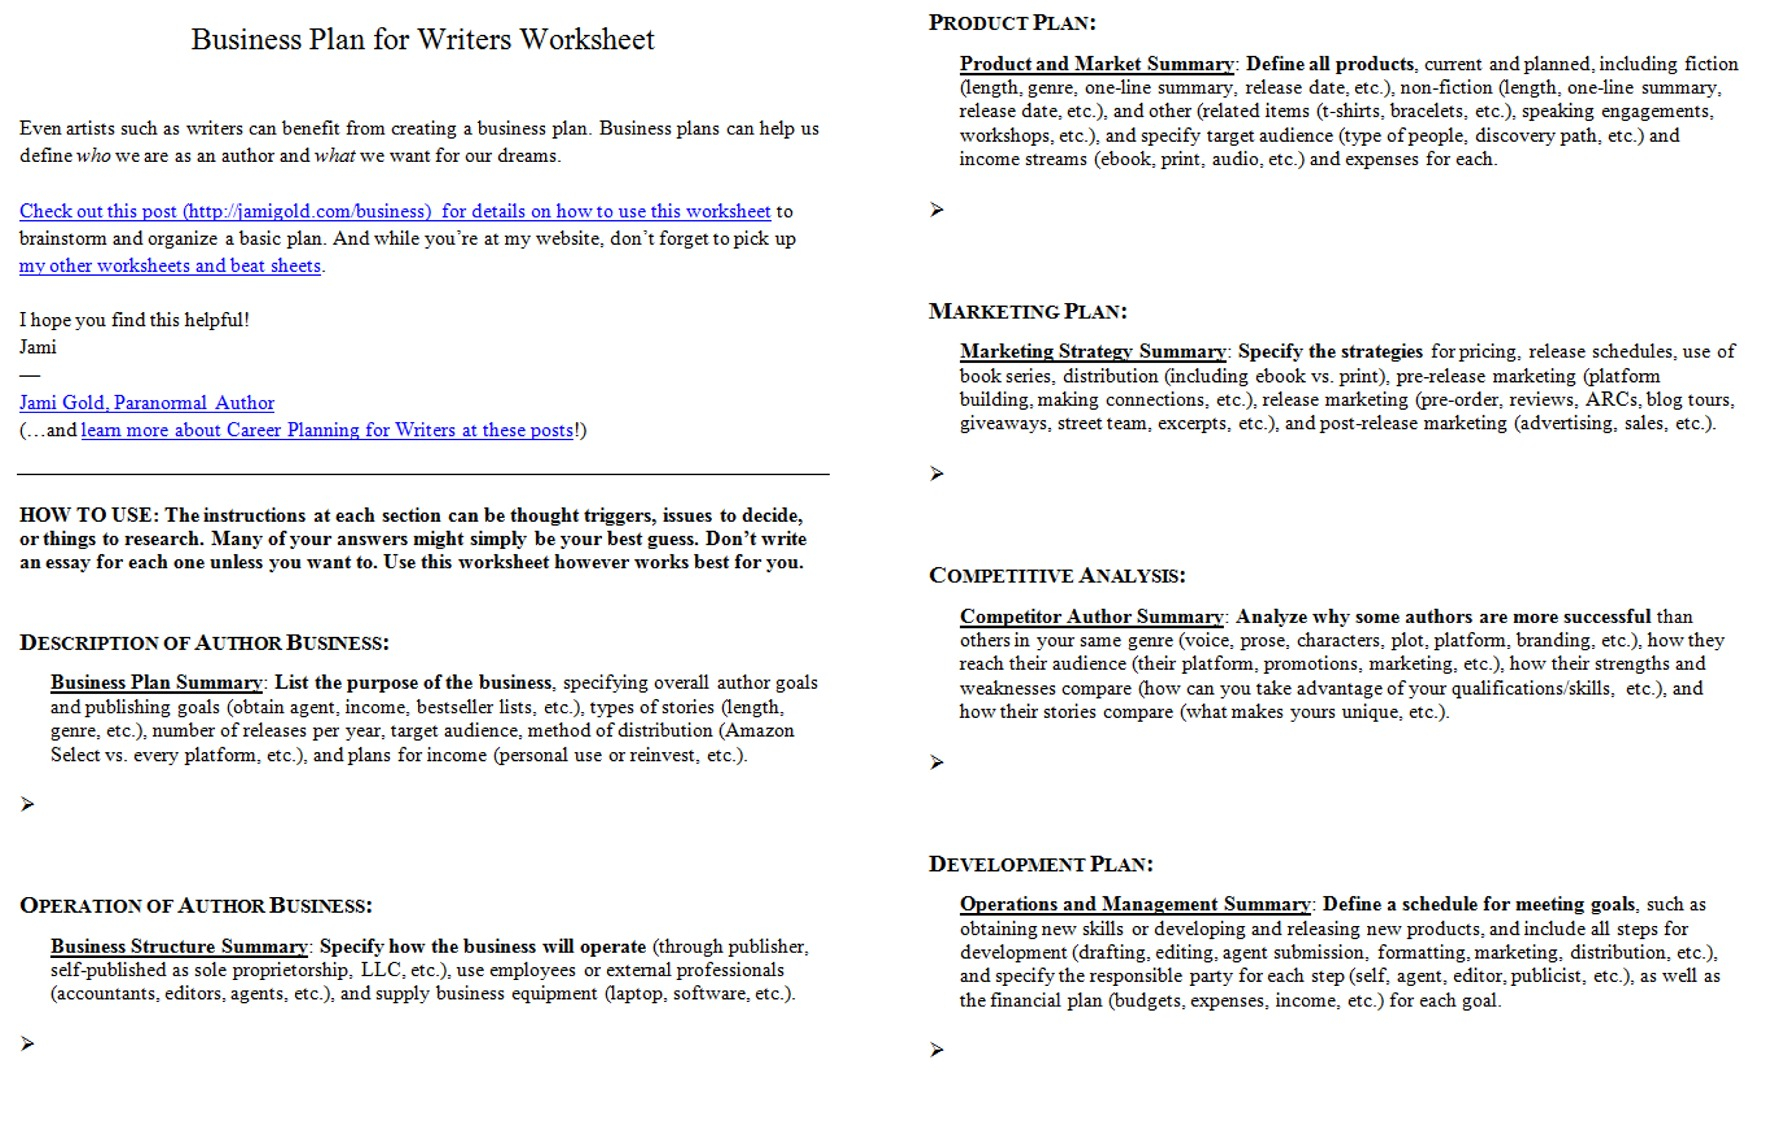 Aldiablosus  Scenic Worksheets For Writers  Jami Gold Paranormal Author With Excellent Screen Shot Of Both Pages Of The Business Plan For Writers Worksheet With Comely Sequencing Activity Worksheets Also Maths Partitioning Worksheets In Addition Halloween Worksheets Free Printable And Excel Worksheet Password Remover As Well As Mitosis Stages Worksheet Additionally Sentences With Prepositions Worksheet From Jamigoldcom With Aldiablosus  Excellent Worksheets For Writers  Jami Gold Paranormal Author With Comely Screen Shot Of Both Pages Of The Business Plan For Writers Worksheet And Scenic Sequencing Activity Worksheets Also Maths Partitioning Worksheets In Addition Halloween Worksheets Free Printable From Jamigoldcom